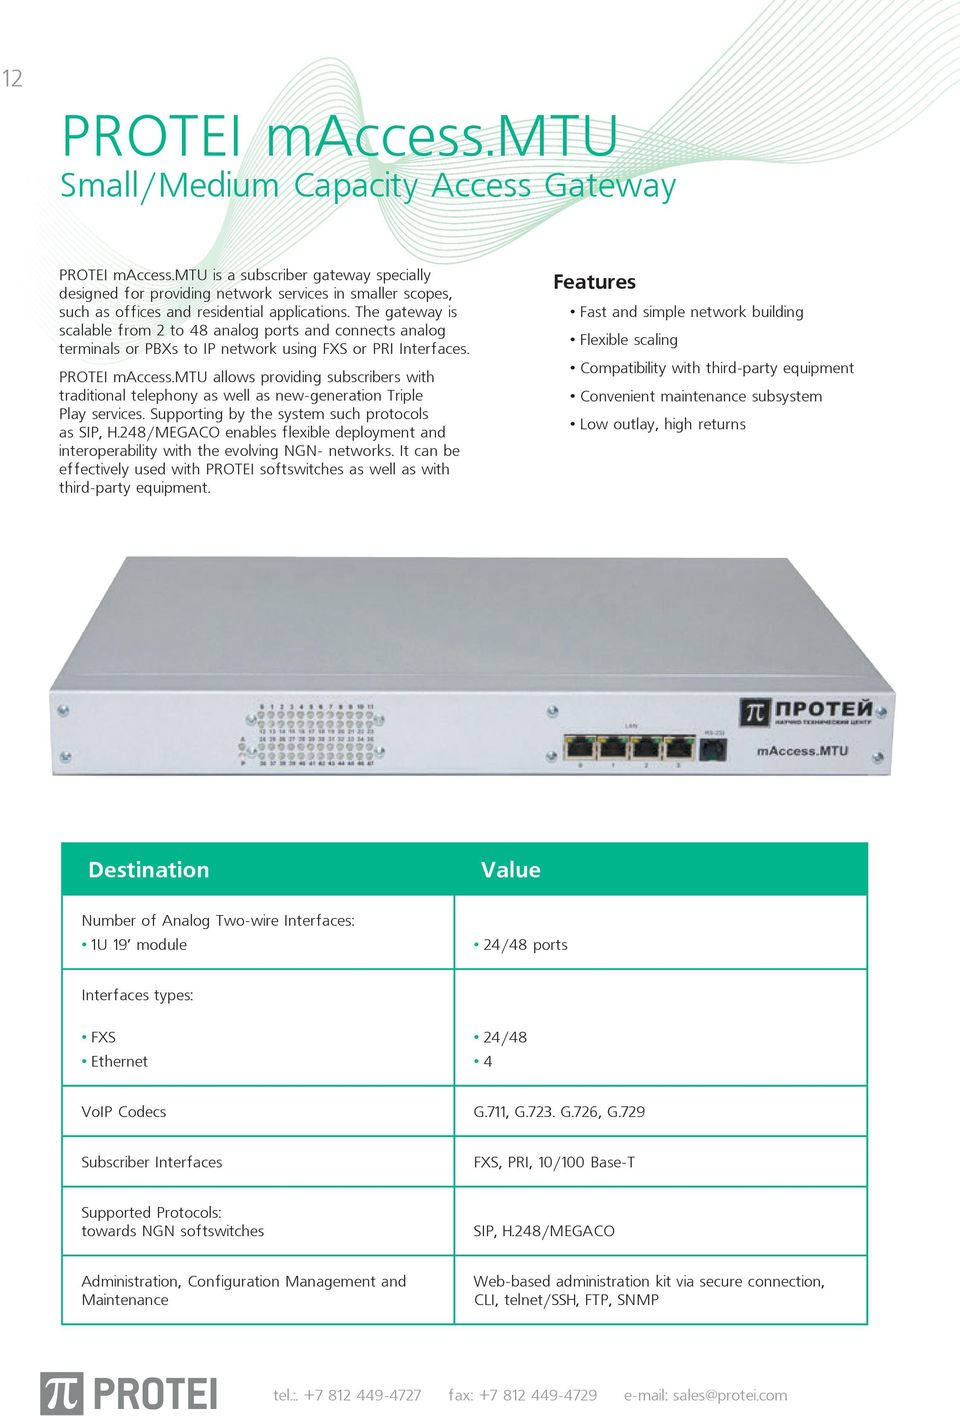 The gateway is scalable from 2 to 48 analog ports and connects analog terminals or PBXs to IP network using FXS or PRI Interfaces. PROTEI maccess.